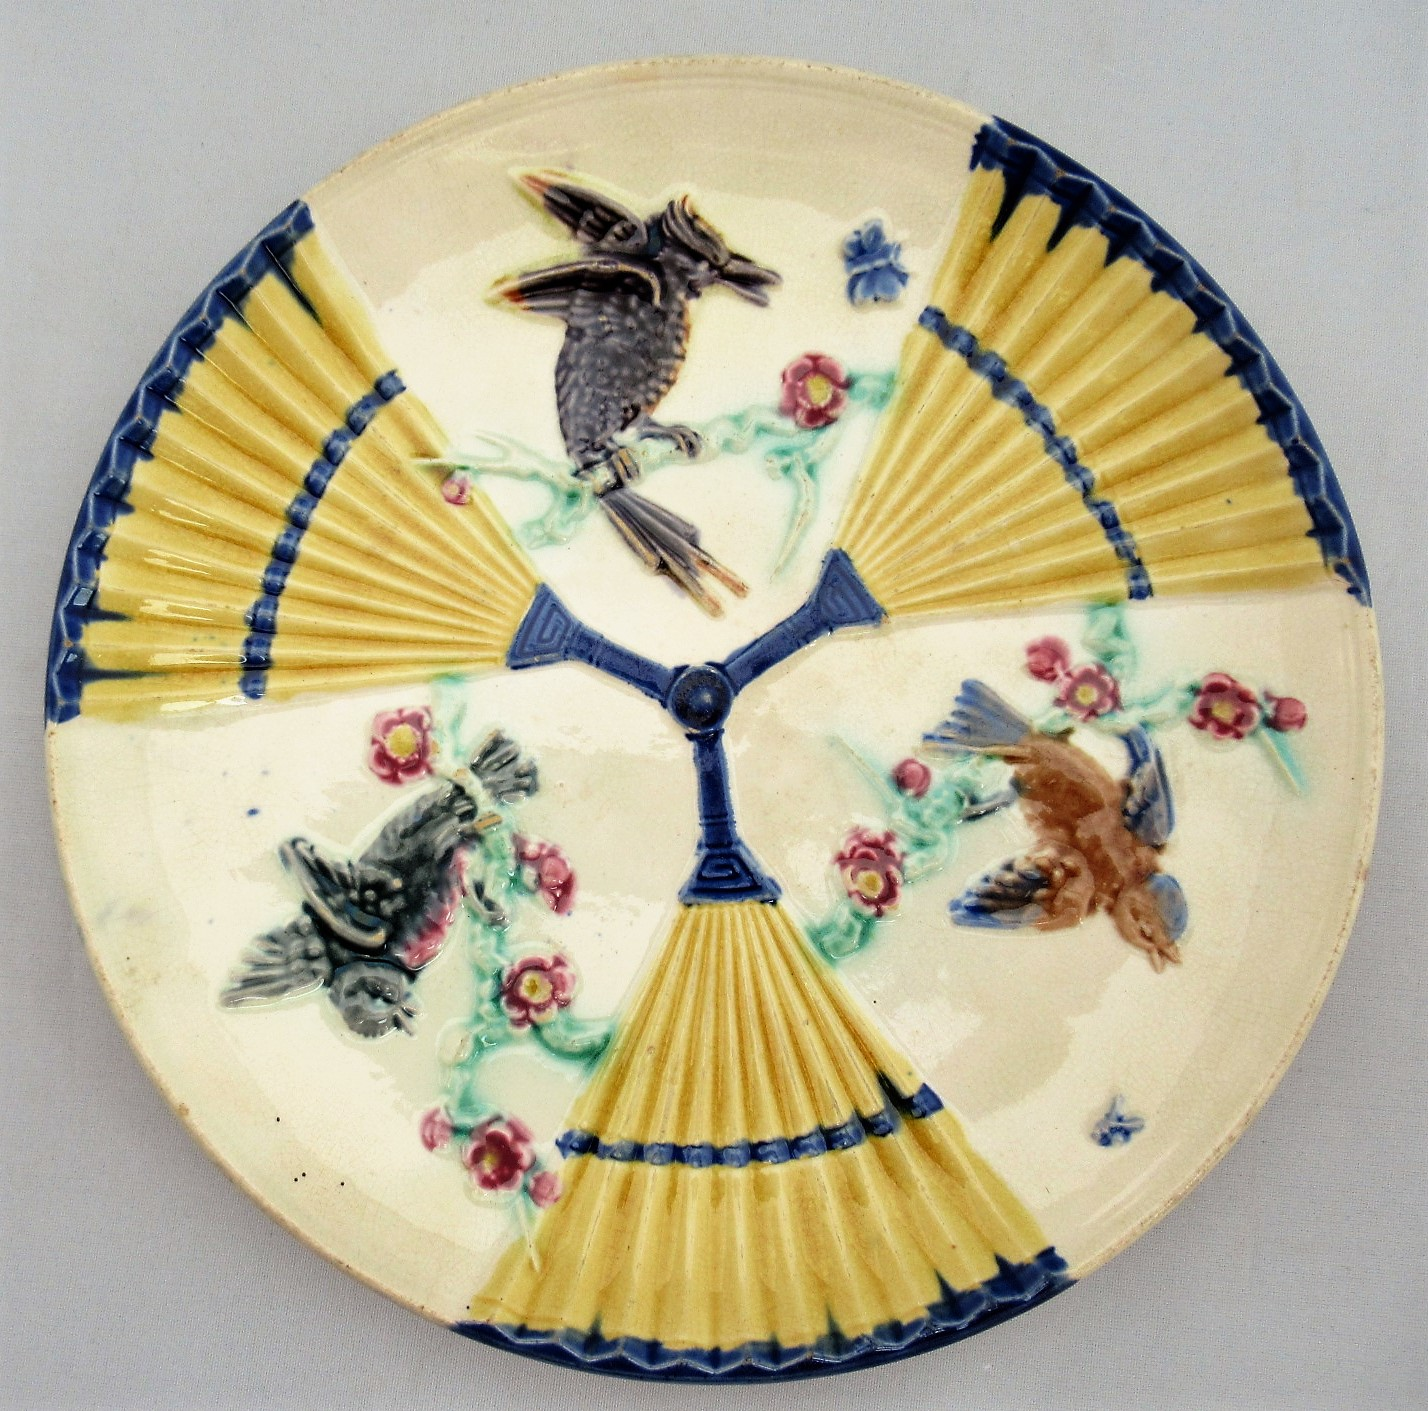 Wedgwood Aesthetic period majolica plate with fan and bird motifs, 1882